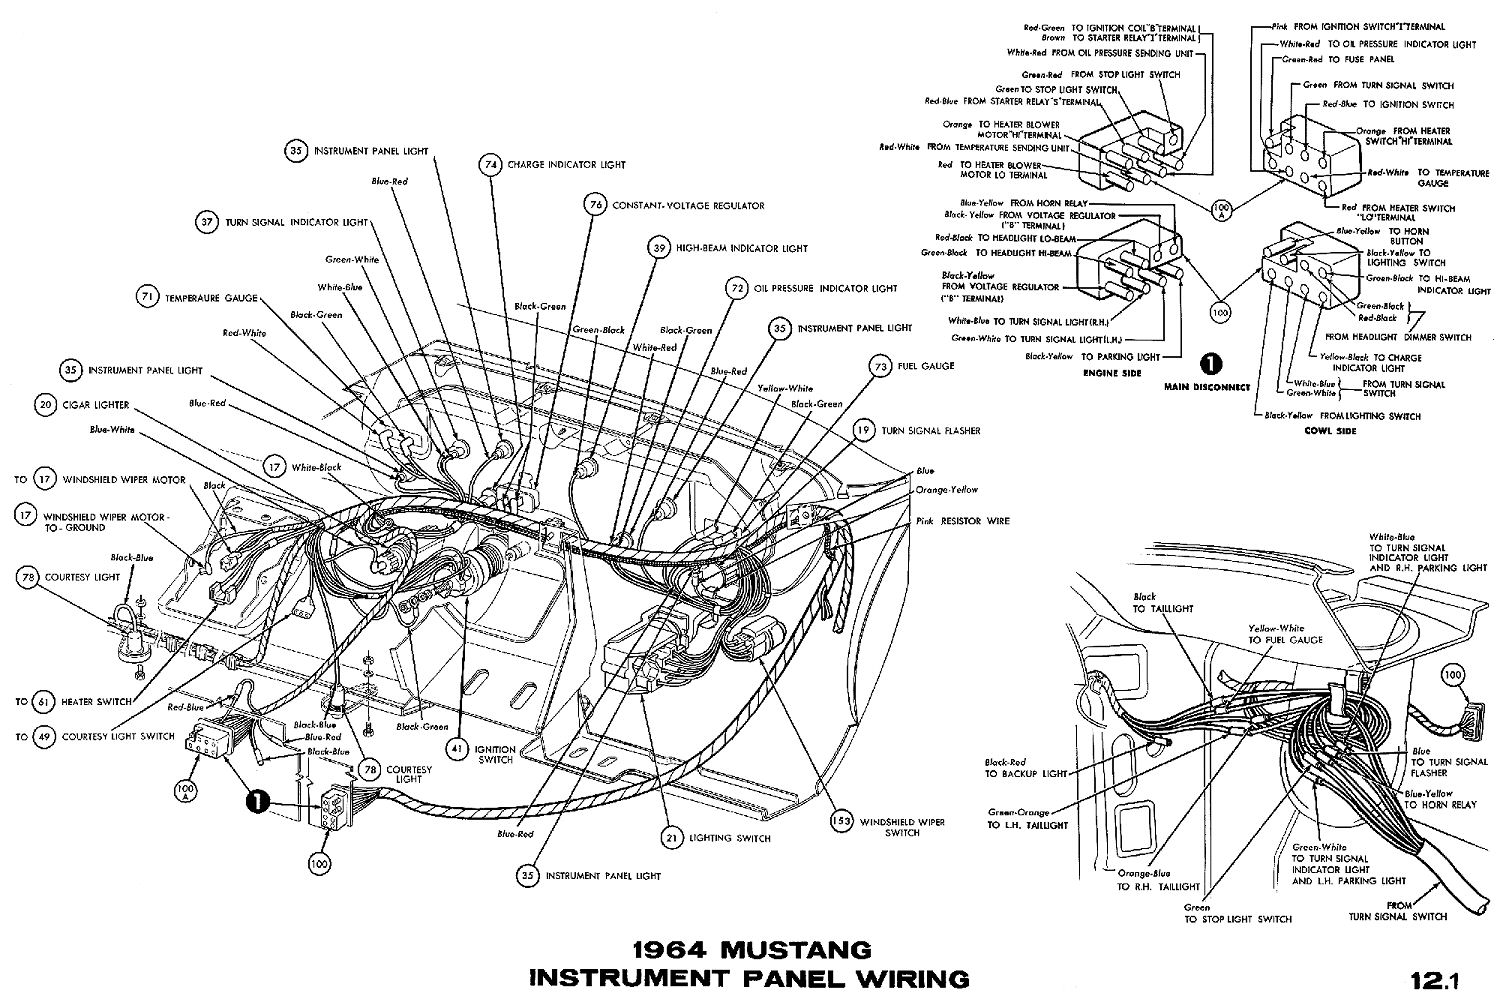 1964b 1964 mustang wiring diagrams average joe restoration 1966 fairlane wiring diagram at aneh.co